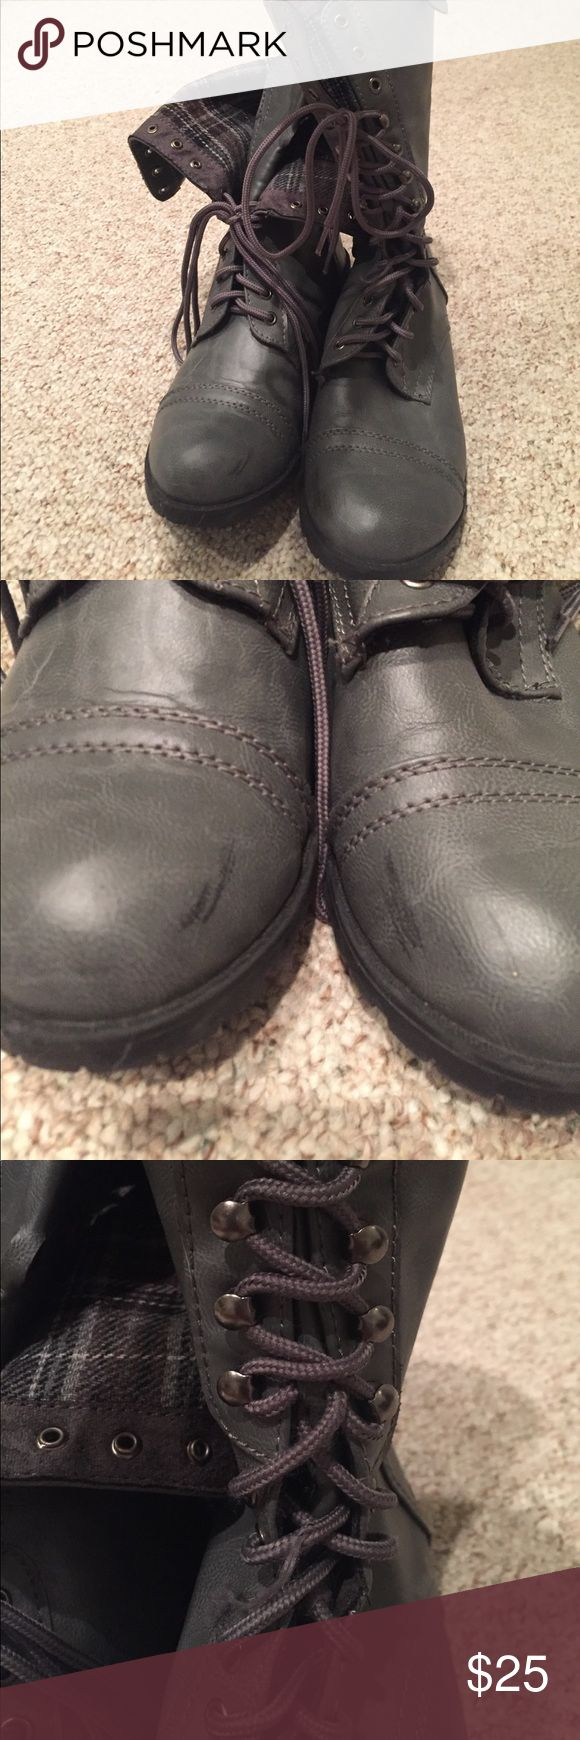 Charlotte Russe combat booties Grey faux leather booties with plaid inside. Scuff marks on tops of shoes (pictured). Pull in lace of one boot (pictured) Charlotte Russe Shoes Combat & Moto Boots